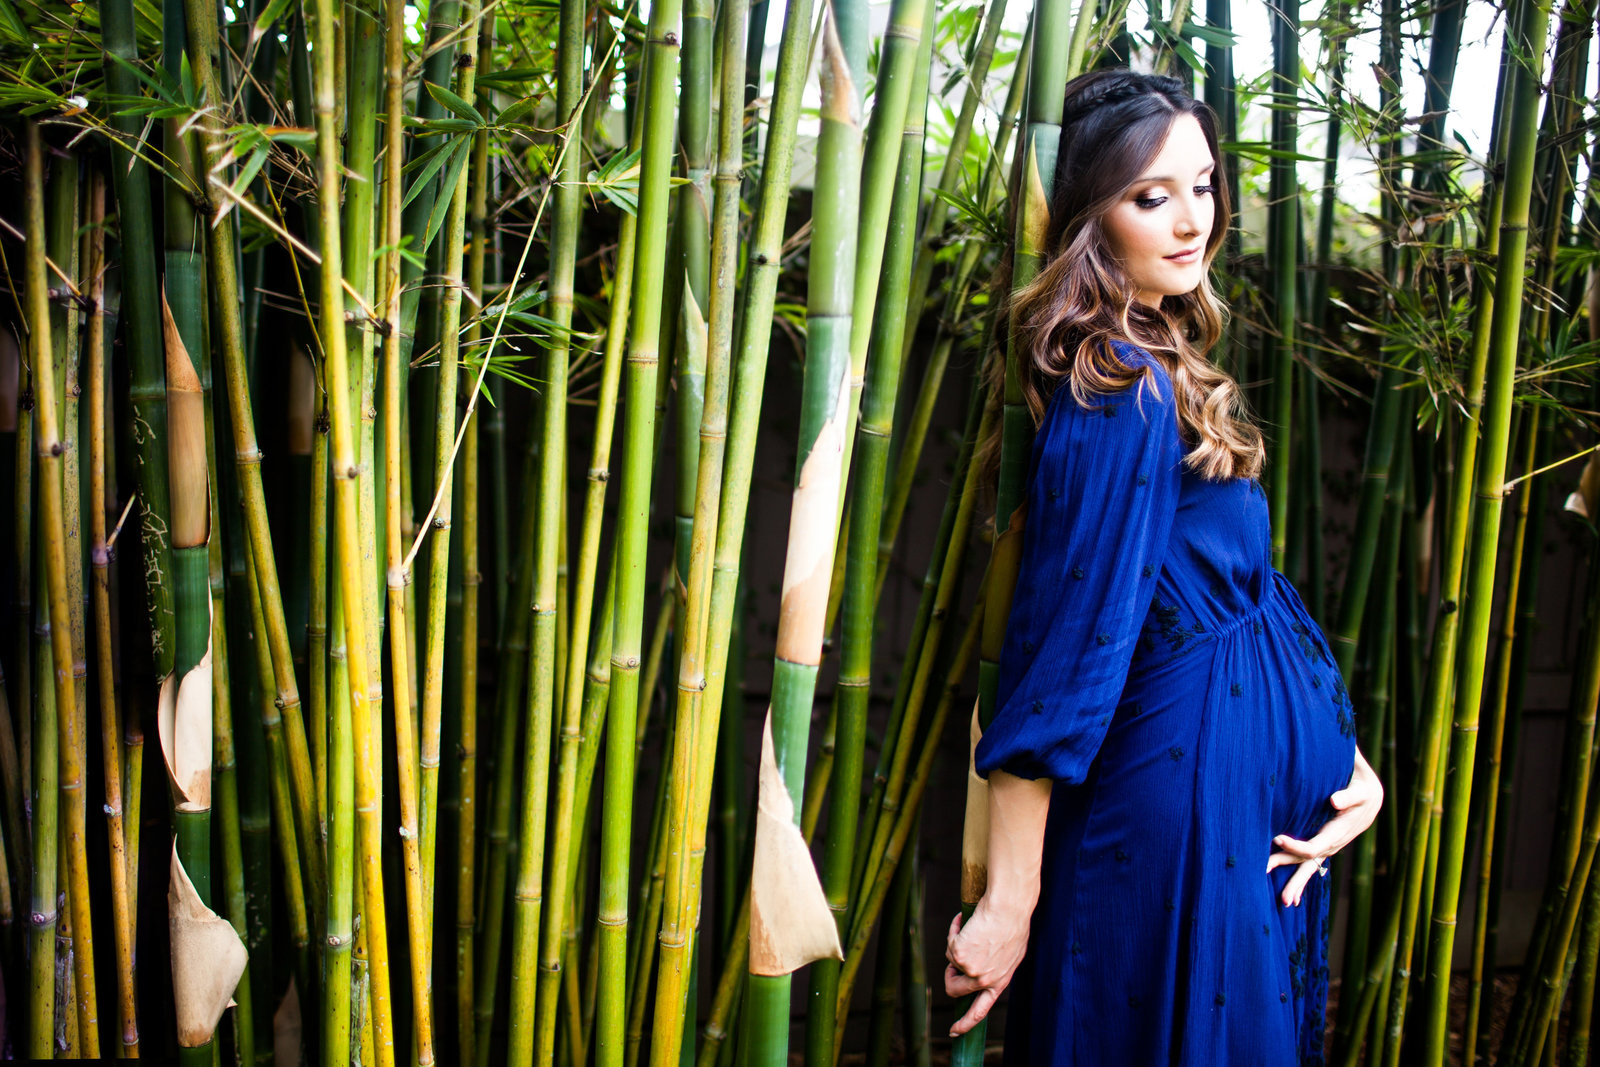 Maternity pictures in front of bamboo